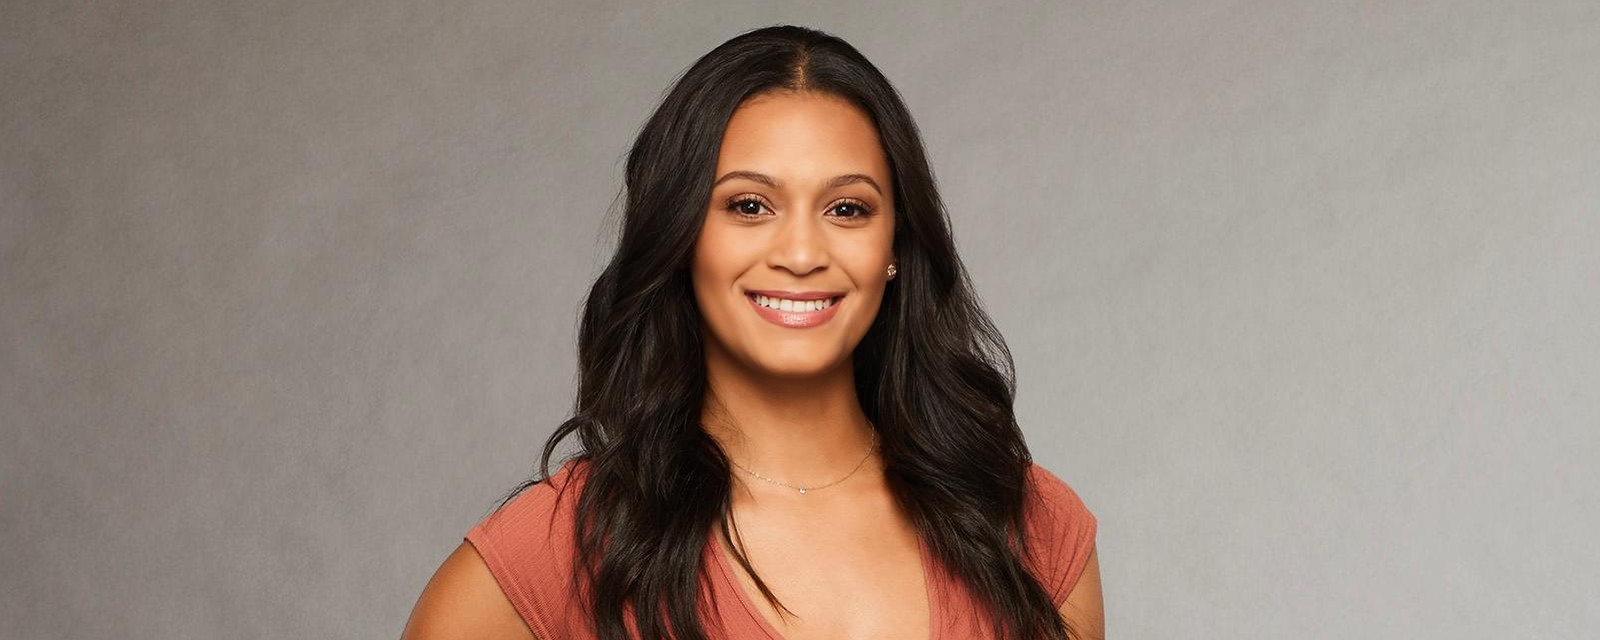 Ashley from 'The Bachelor' Season 22